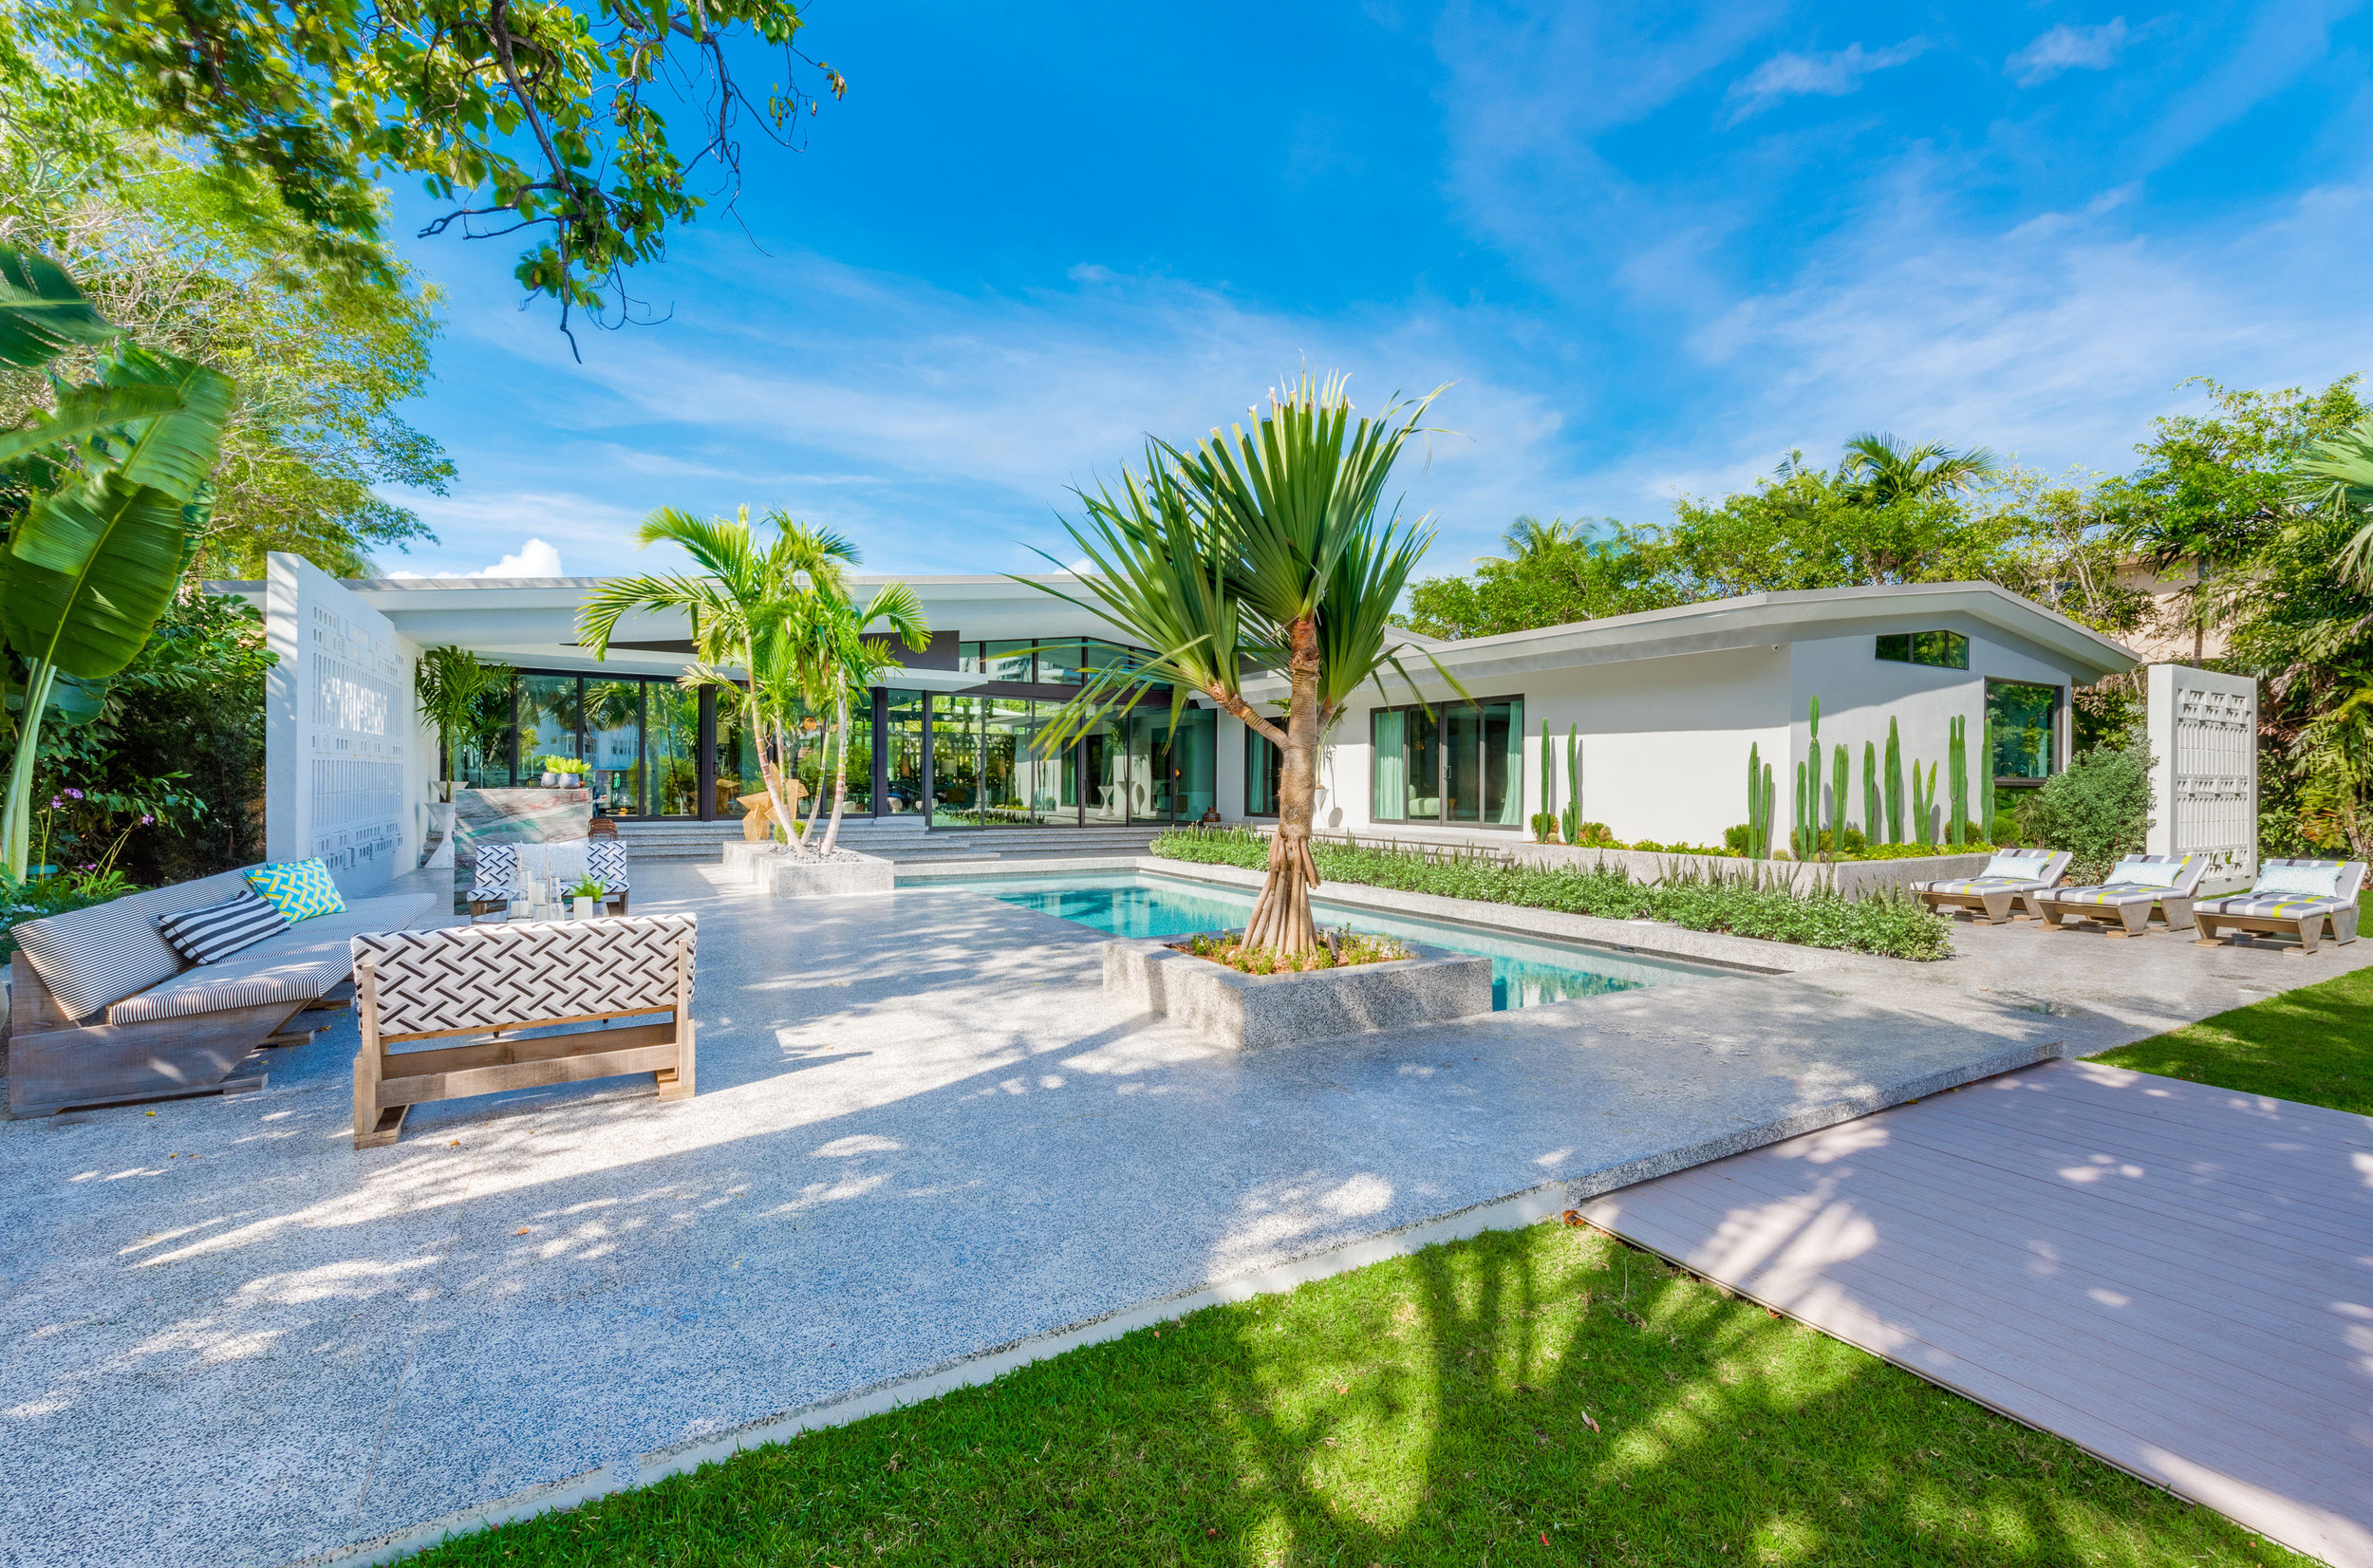 Waterfront Estate On Miami Beach's Flamingo Drive Owned By Designer Jean-Louis Deniot Sells For Record $7.5 Million